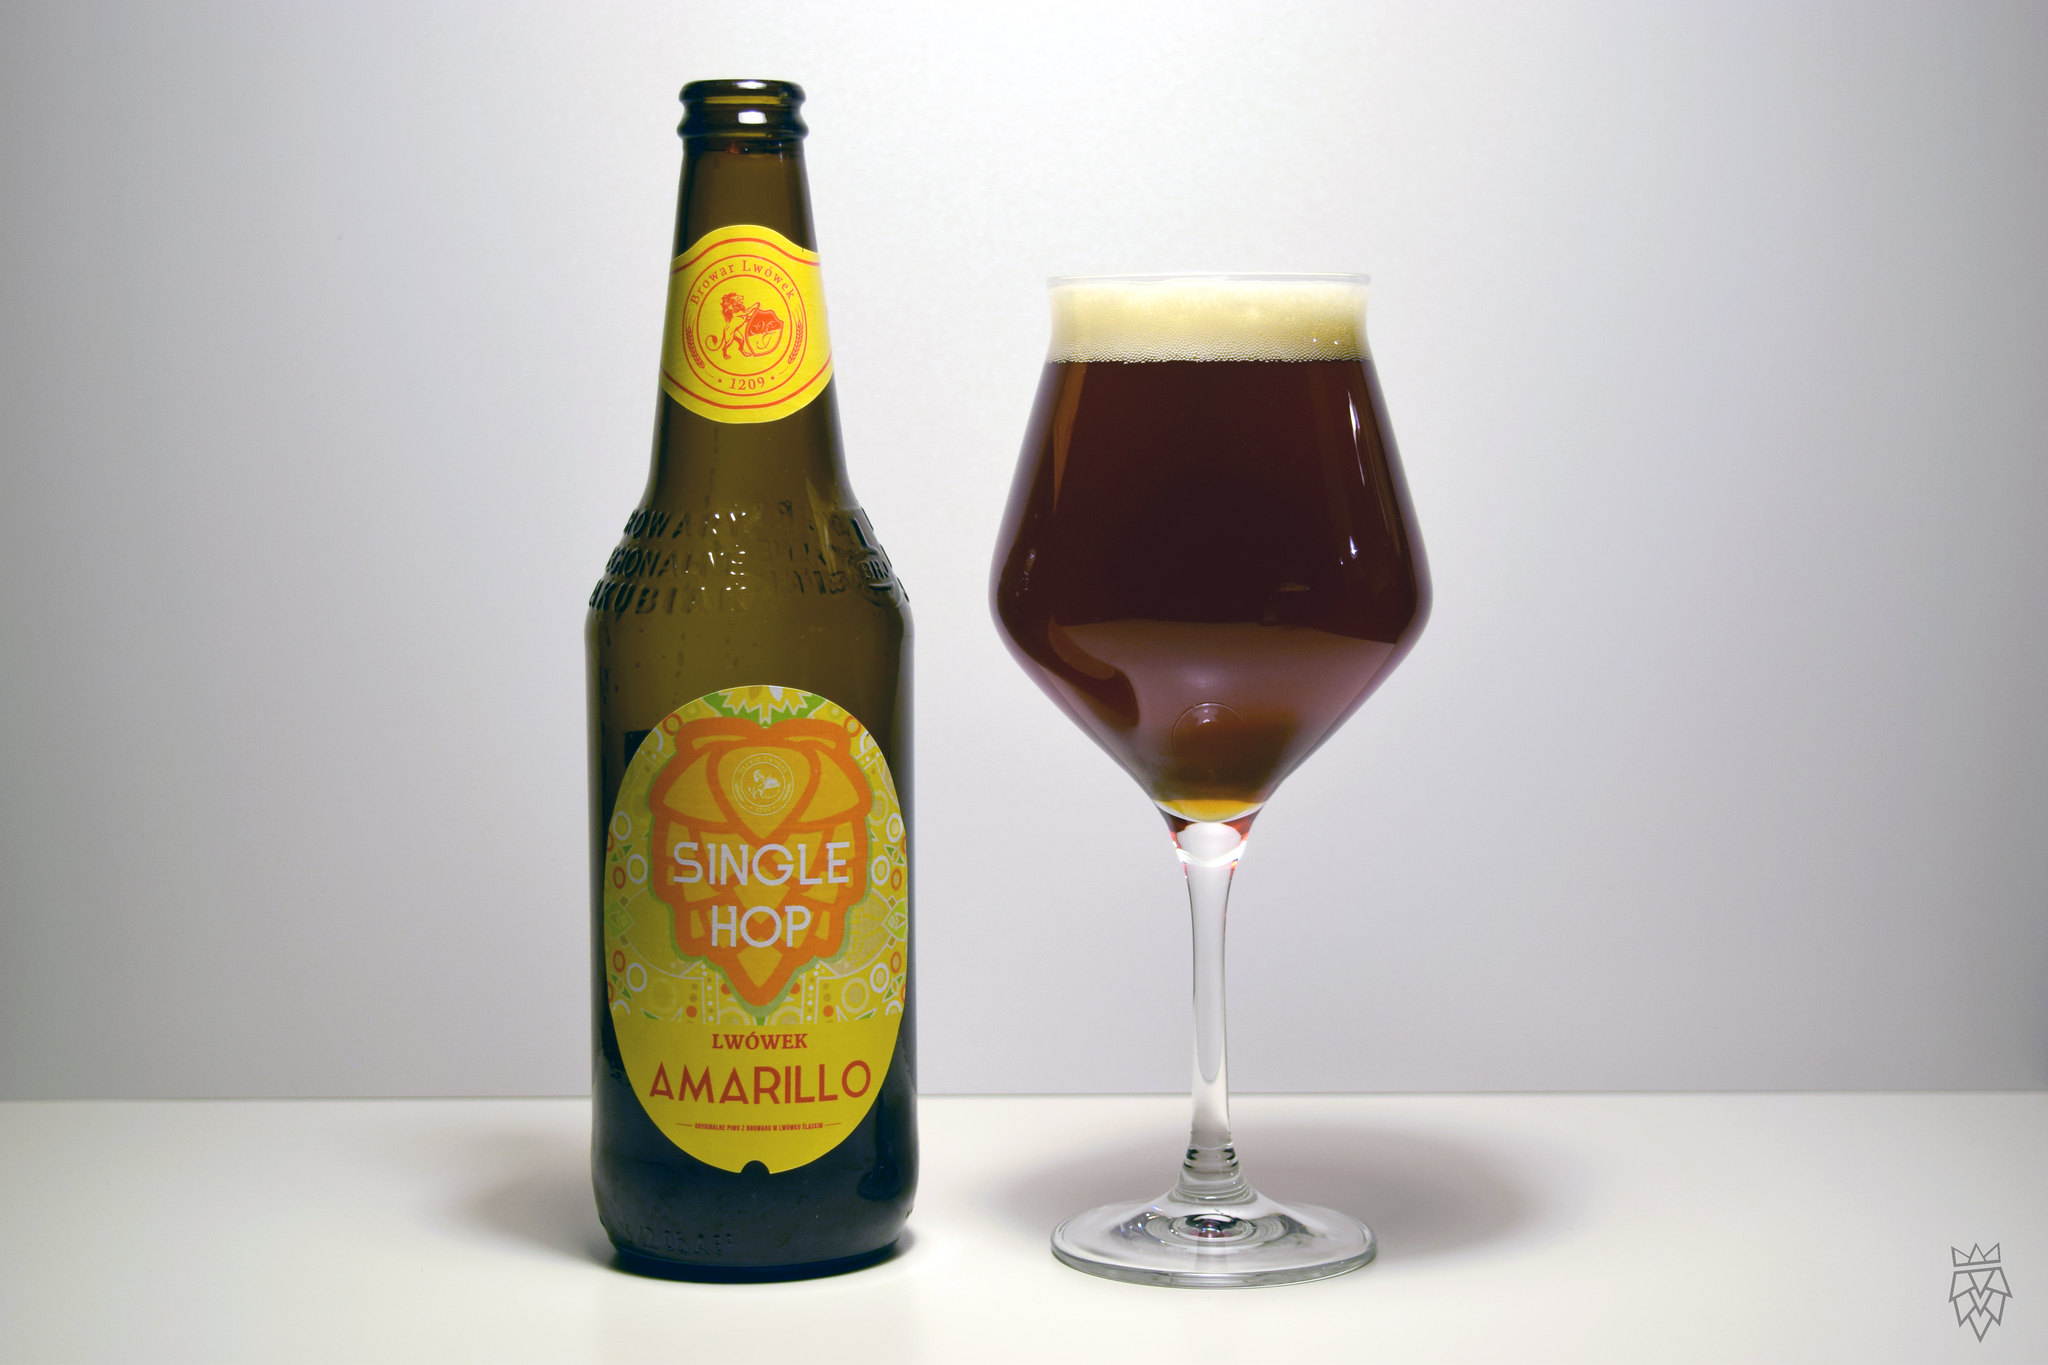 lwówek single hop amarillo